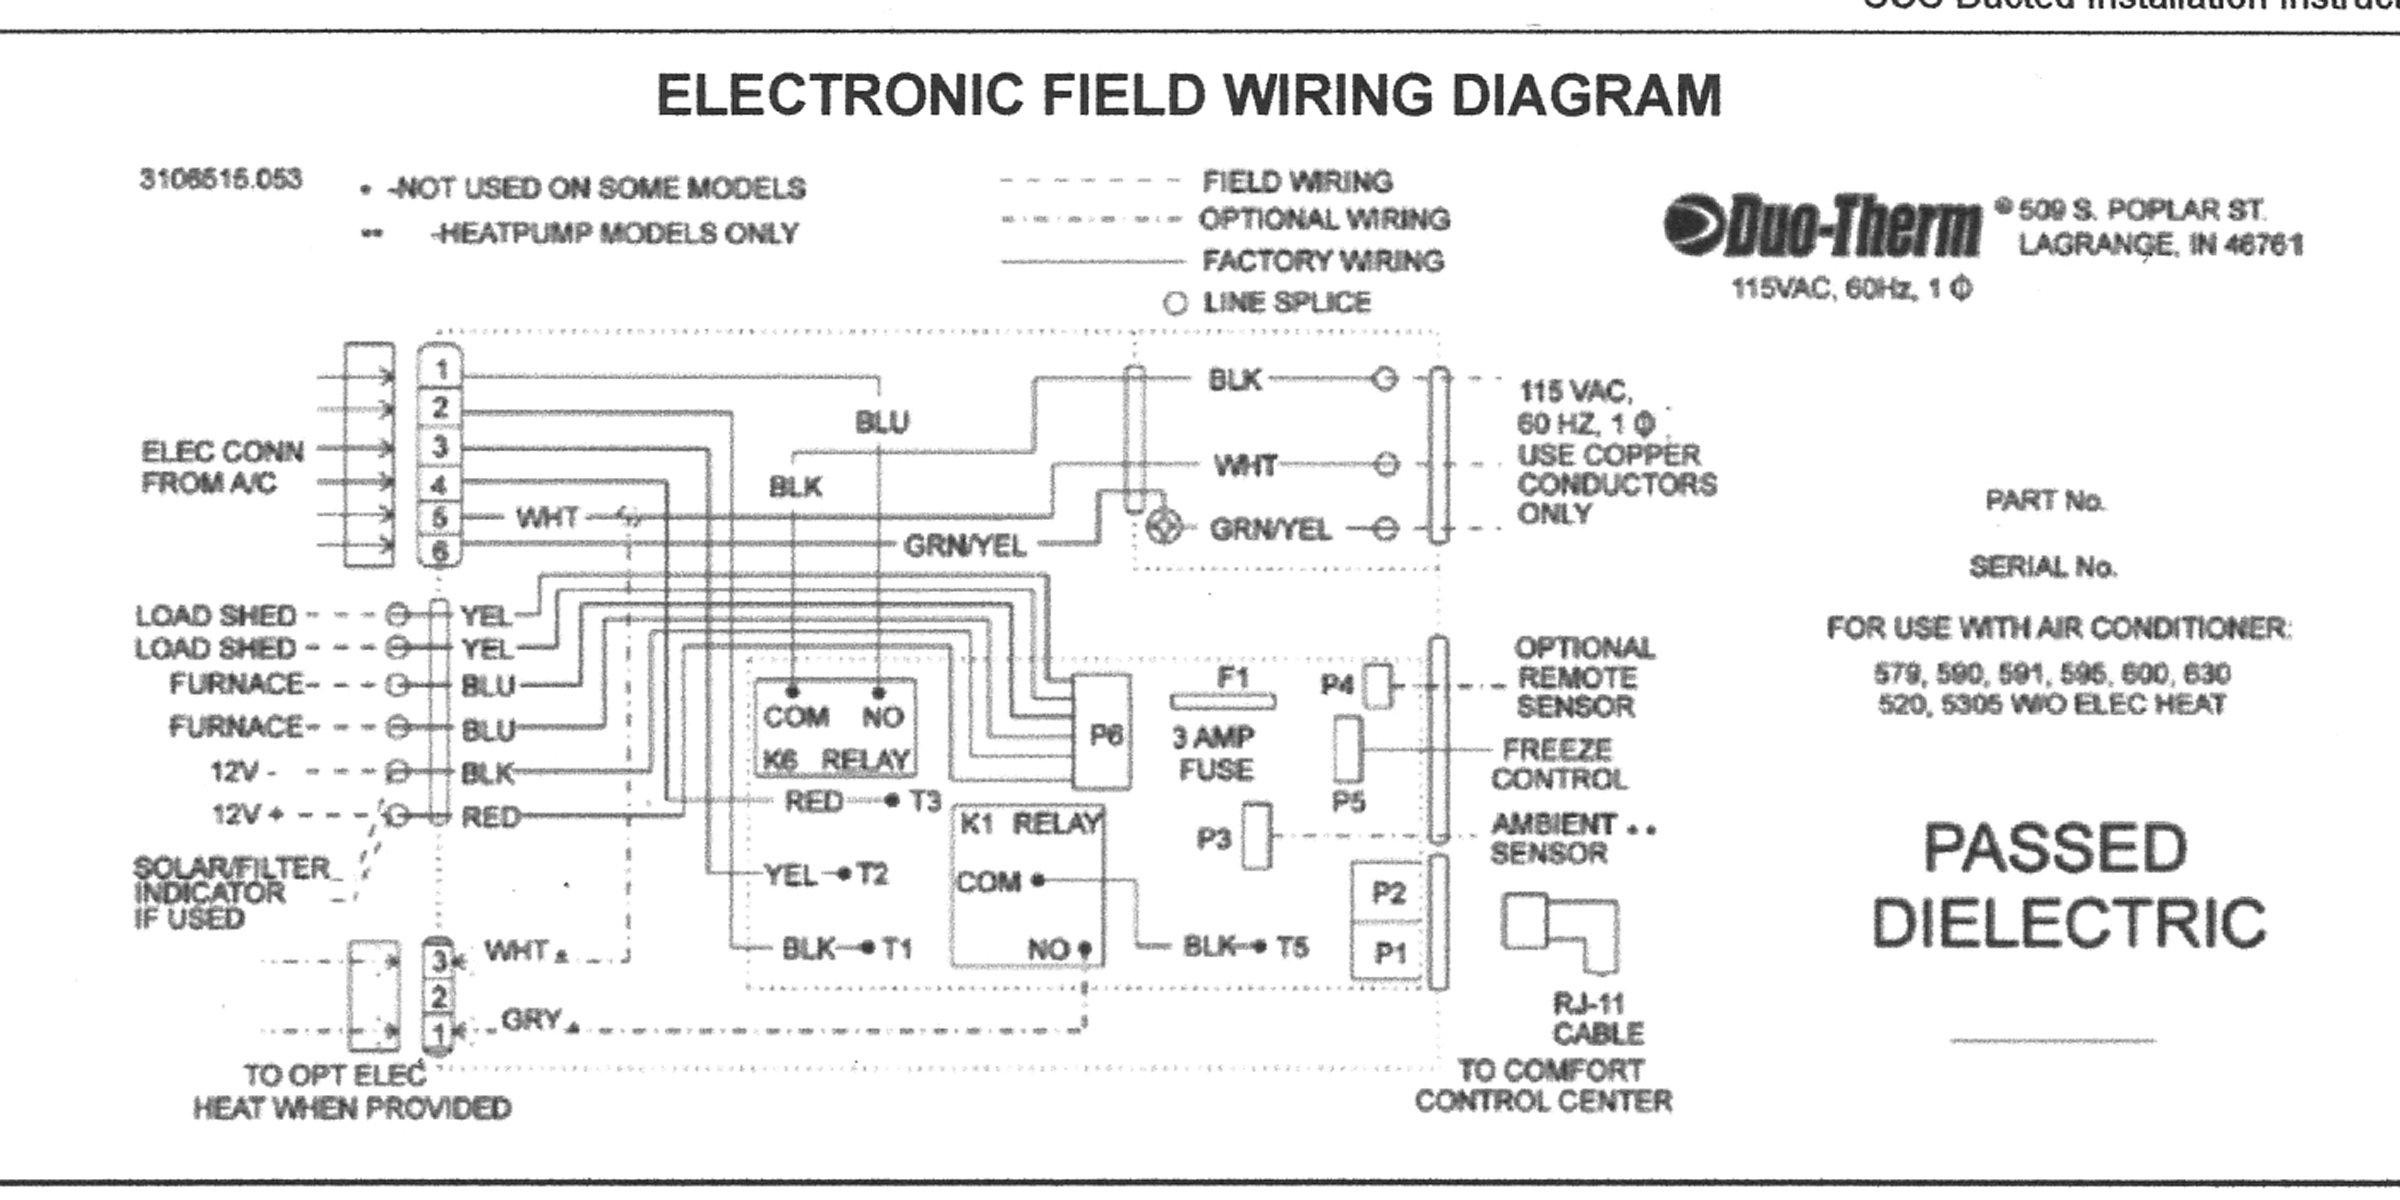 Dometic thermostat Wiring Diagram Wiring Diagram for Ge ... on